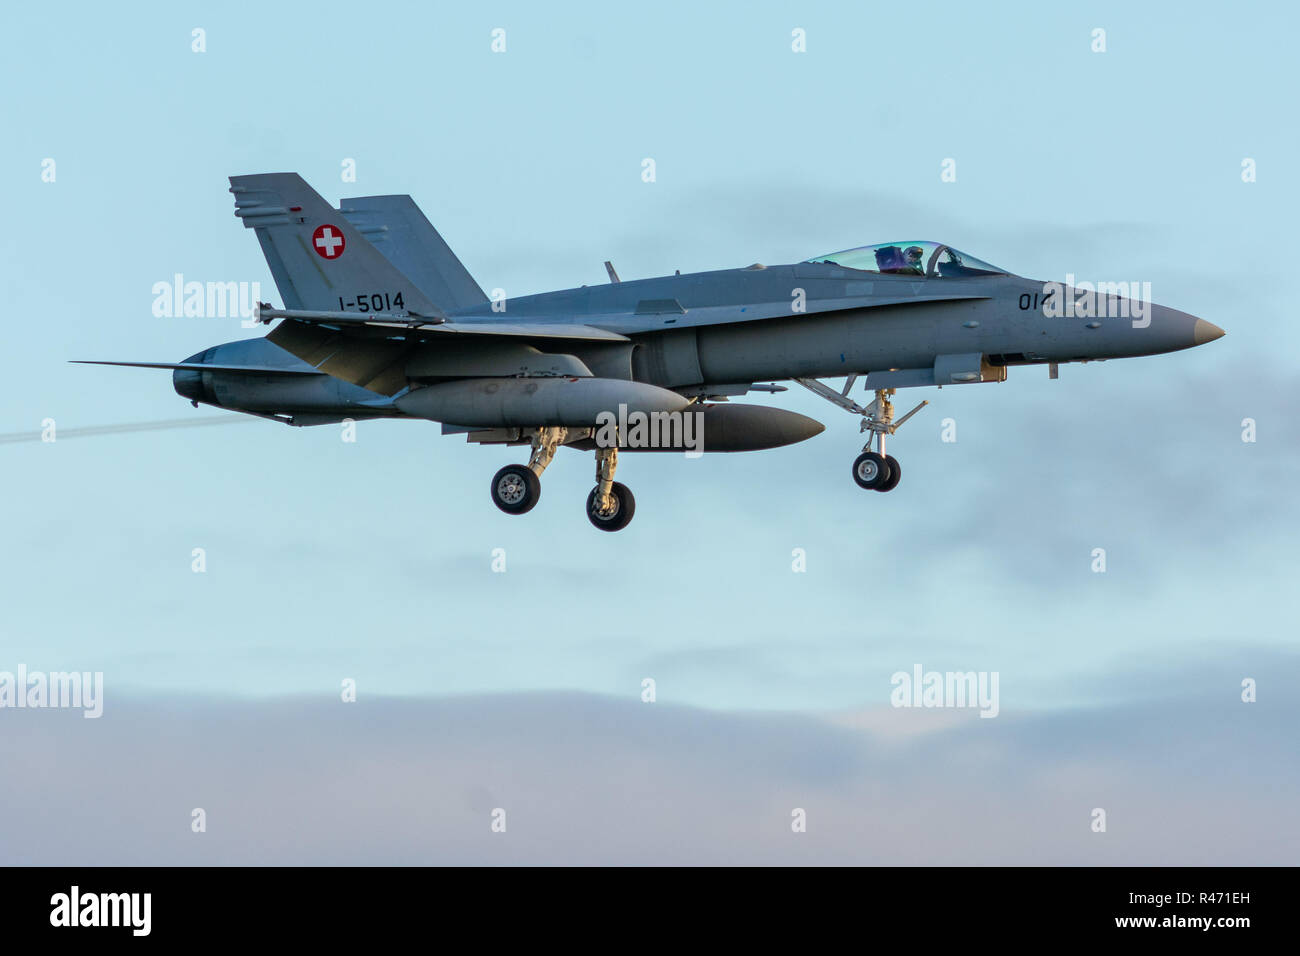 hight resolution of swiss airforce f18 hornet stock image